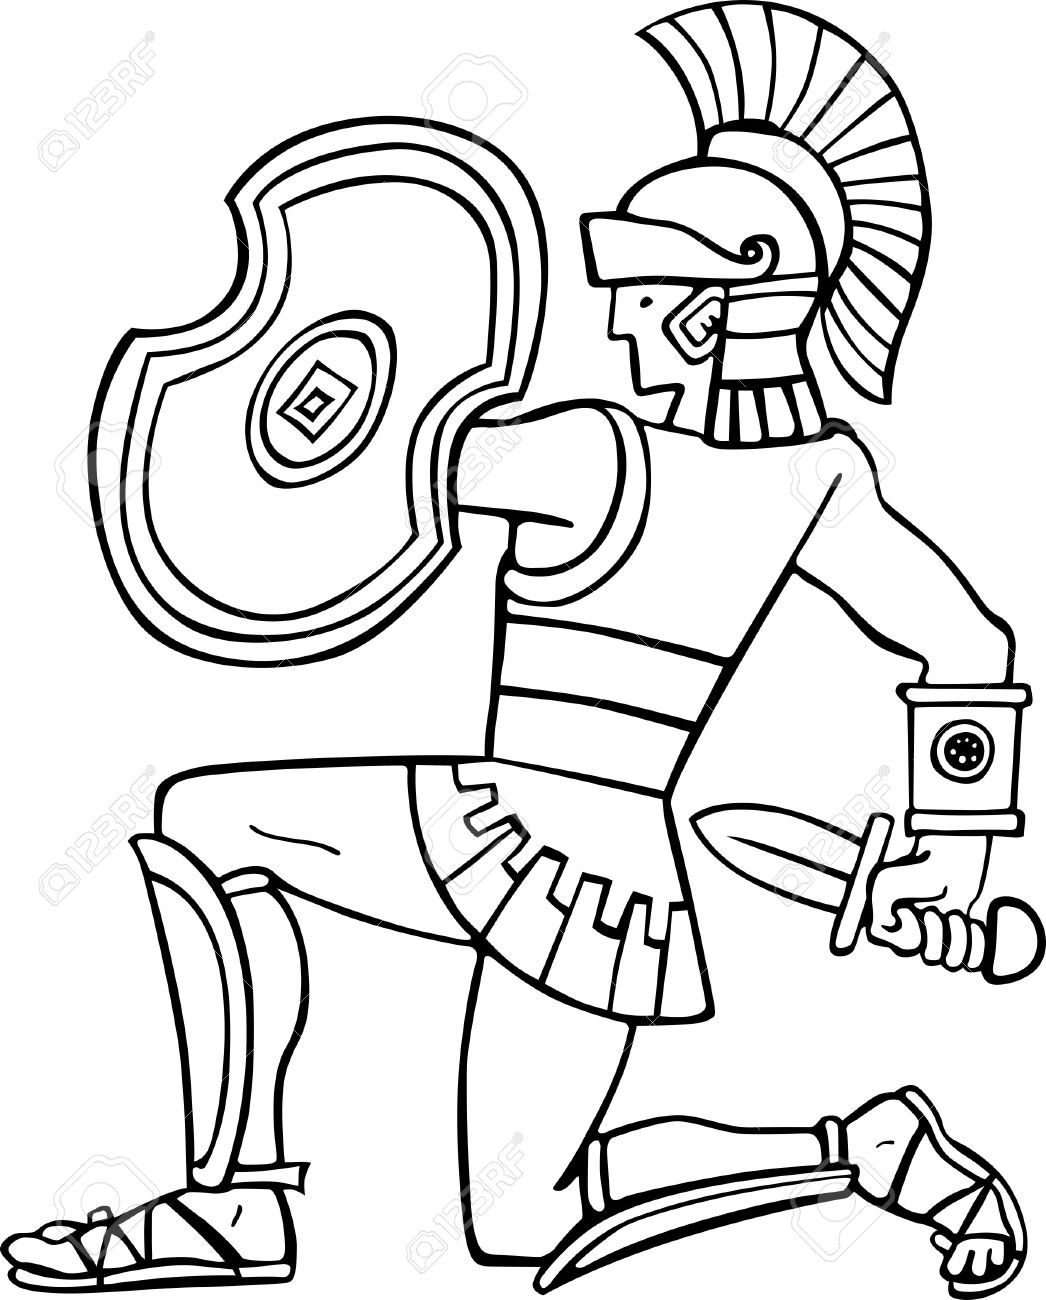 Roman Soldier Clipart Black And White.